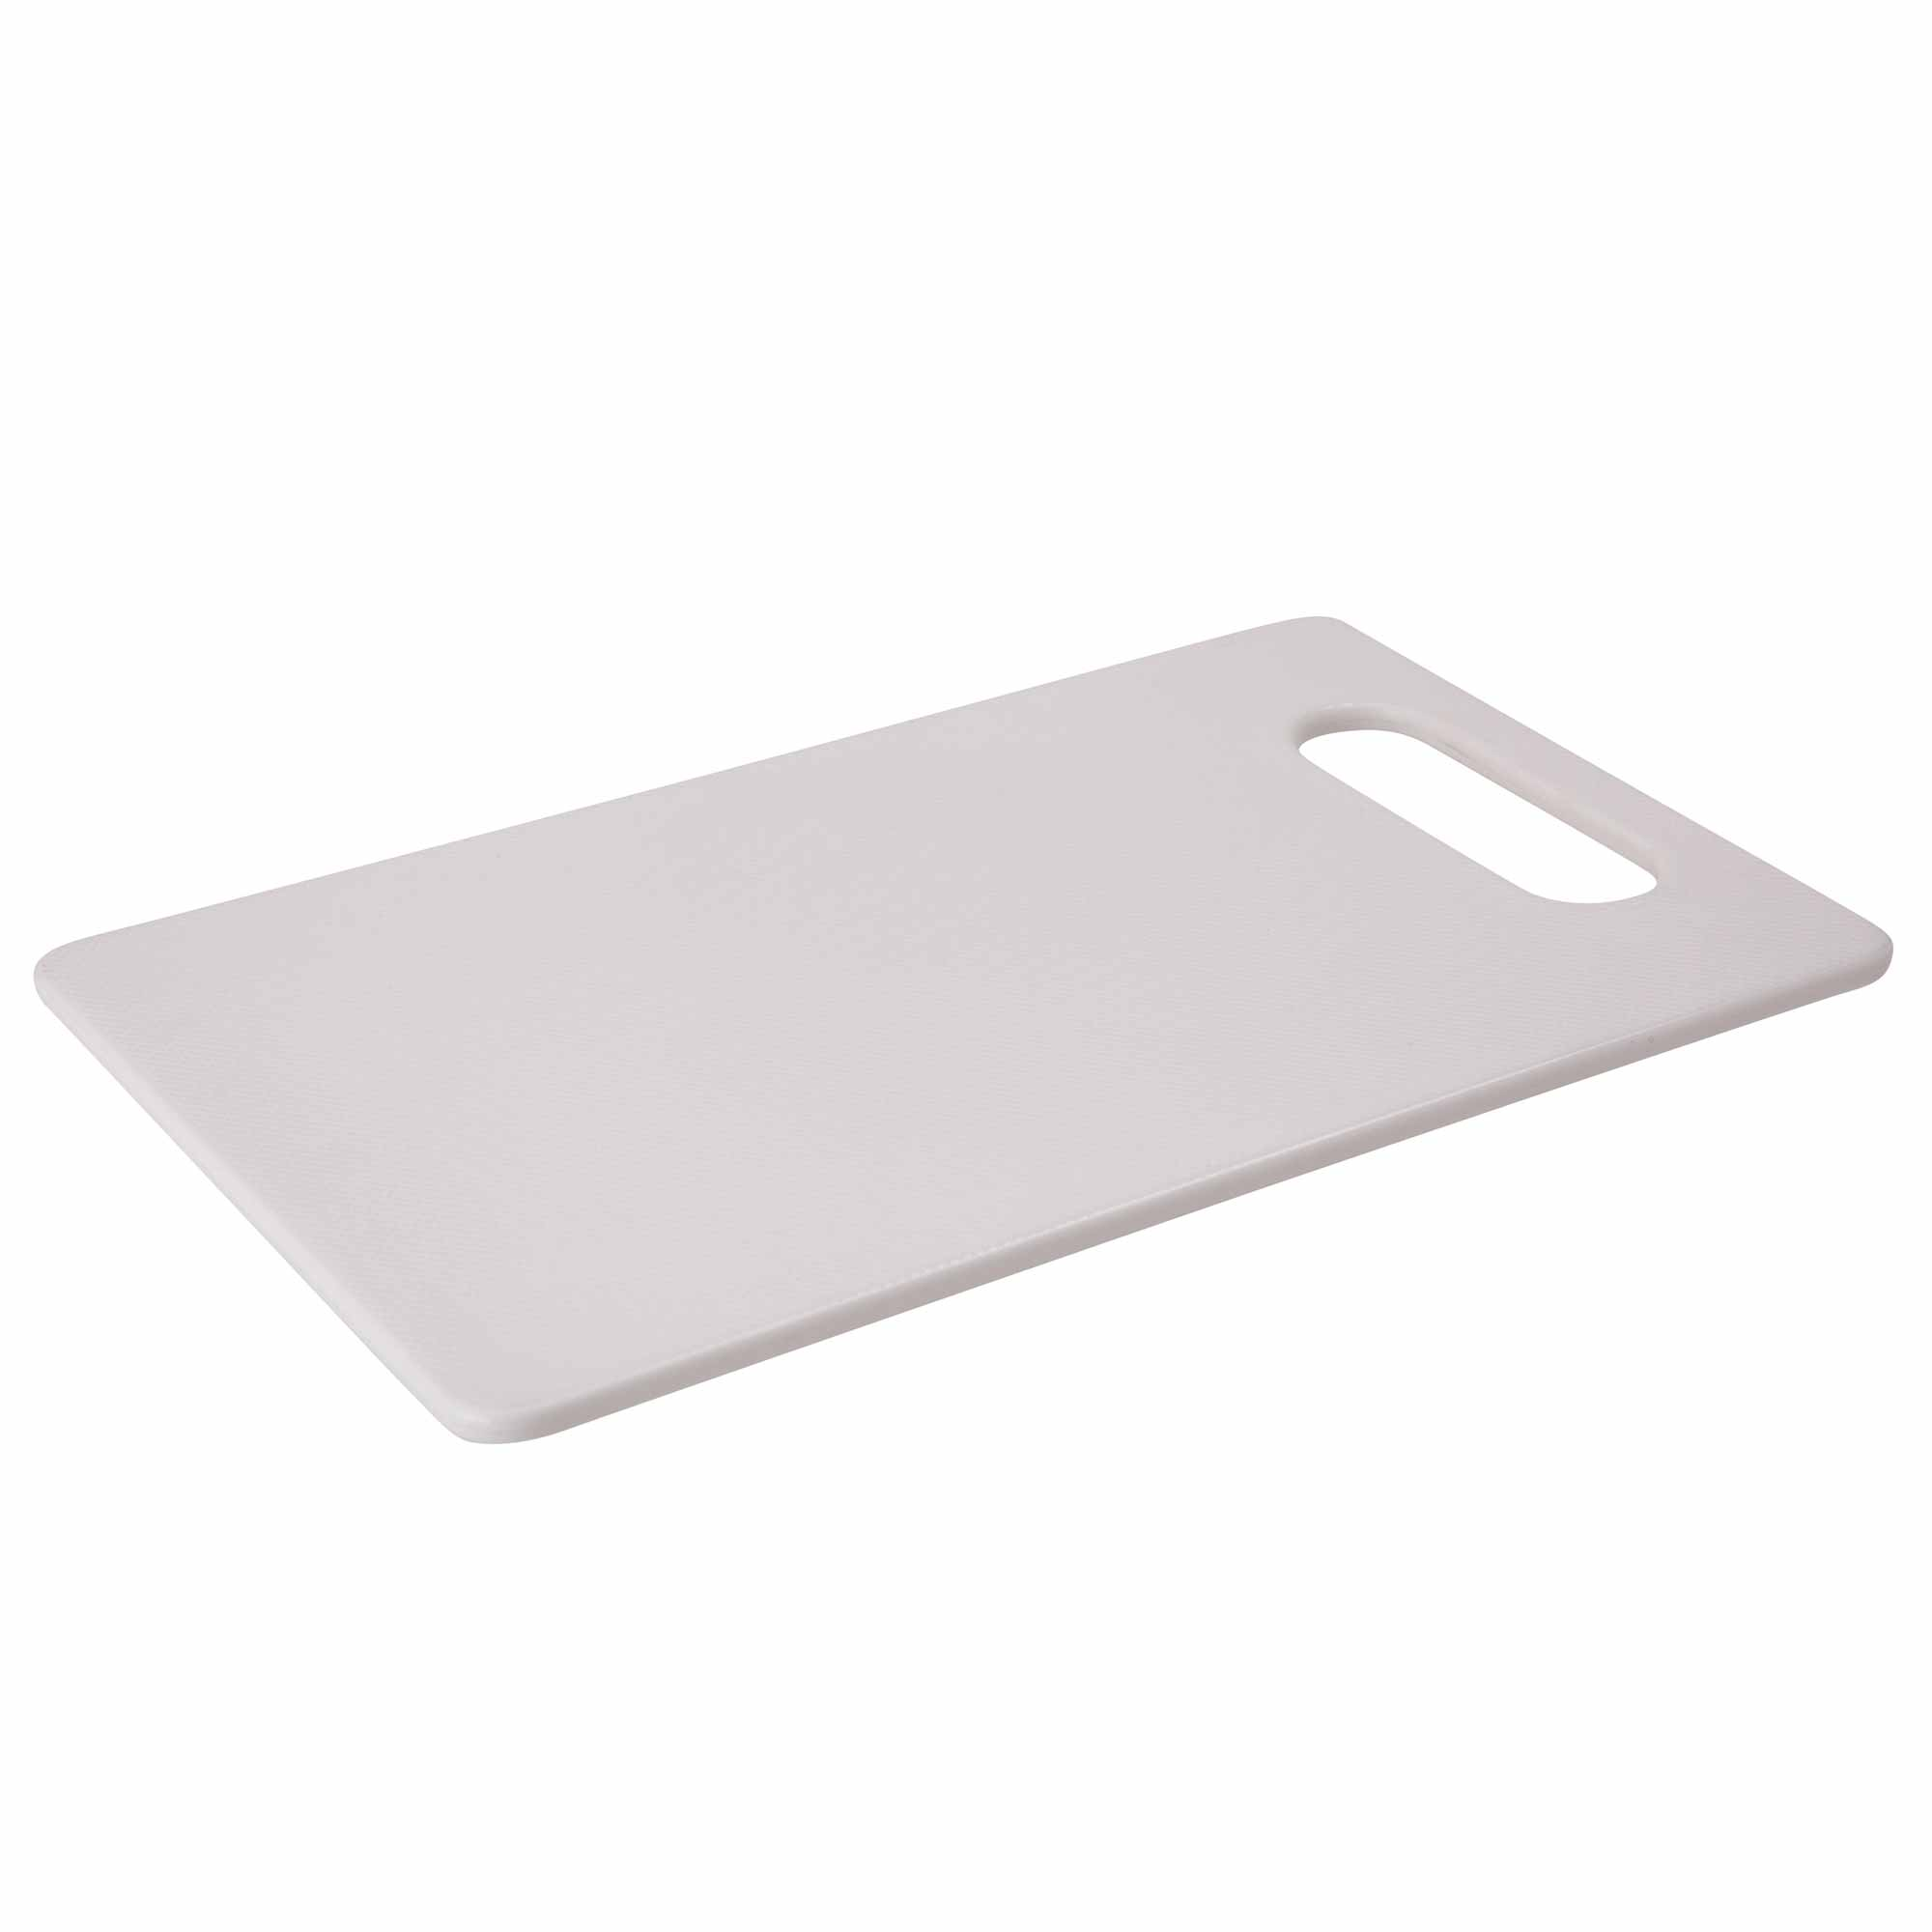 White cutting board 25 x 15cm at drinkstuff for White cutting board used for